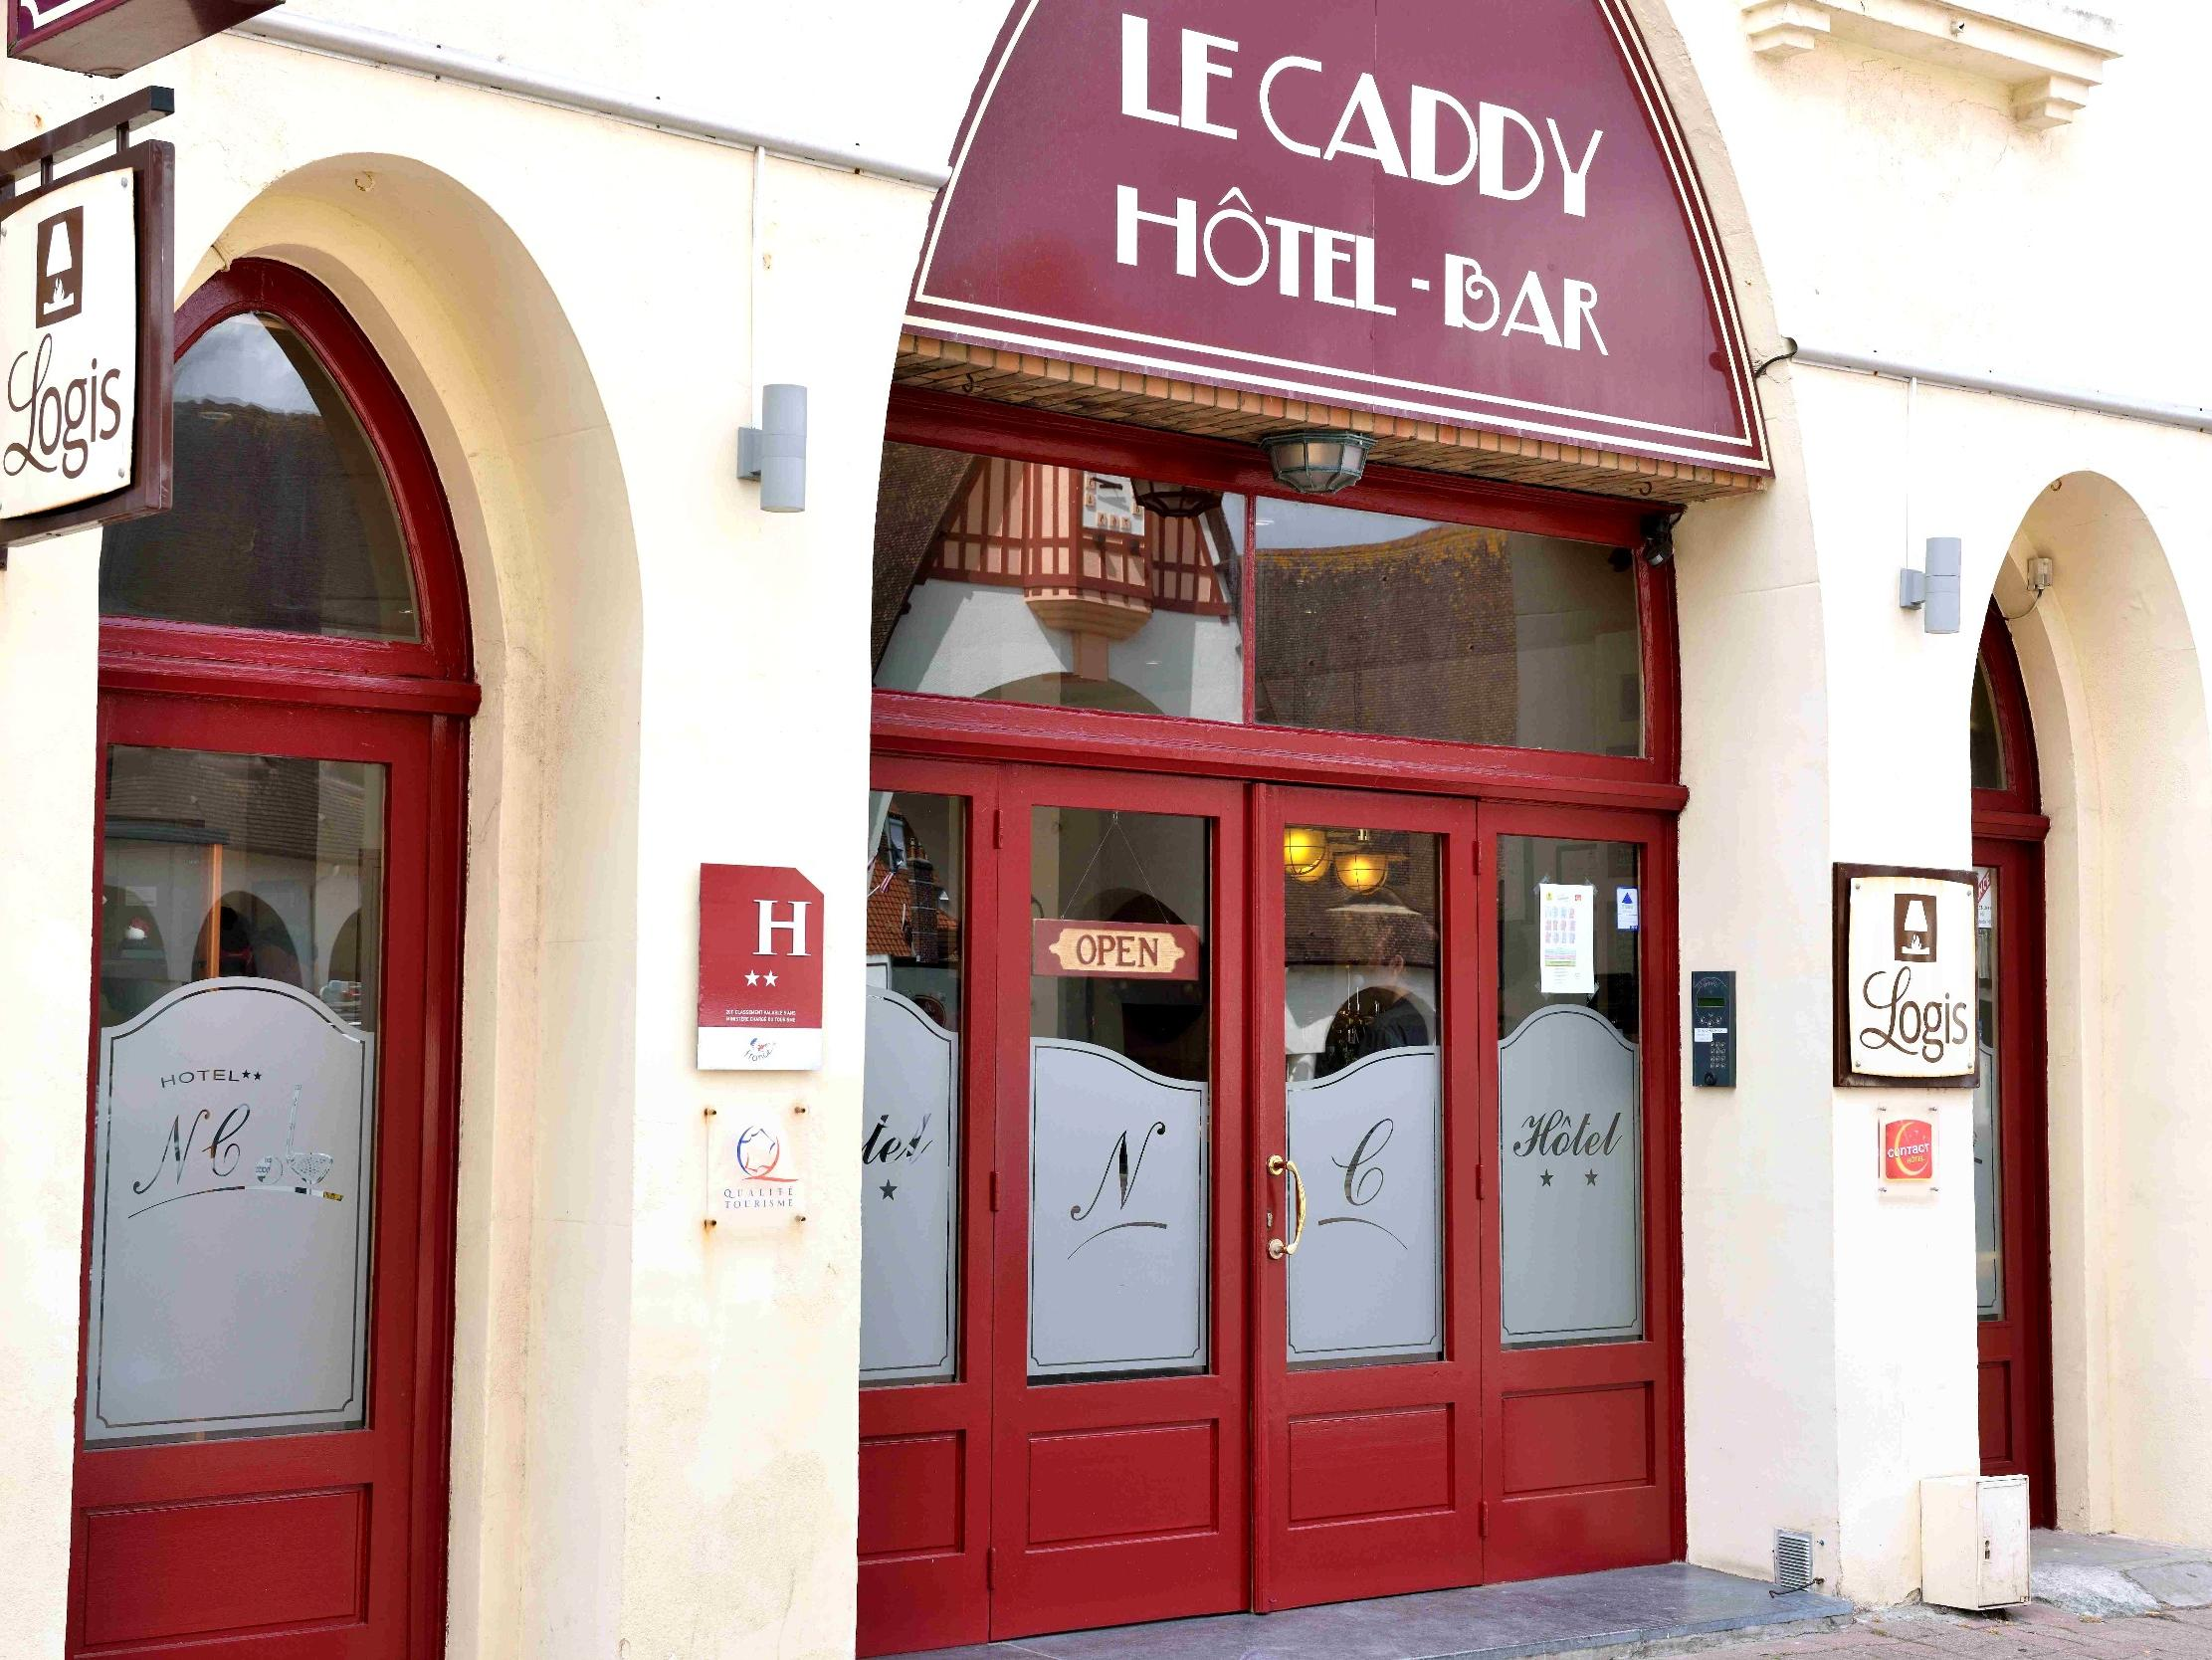 Hôtel le caddy logis in Le touquet paris plage